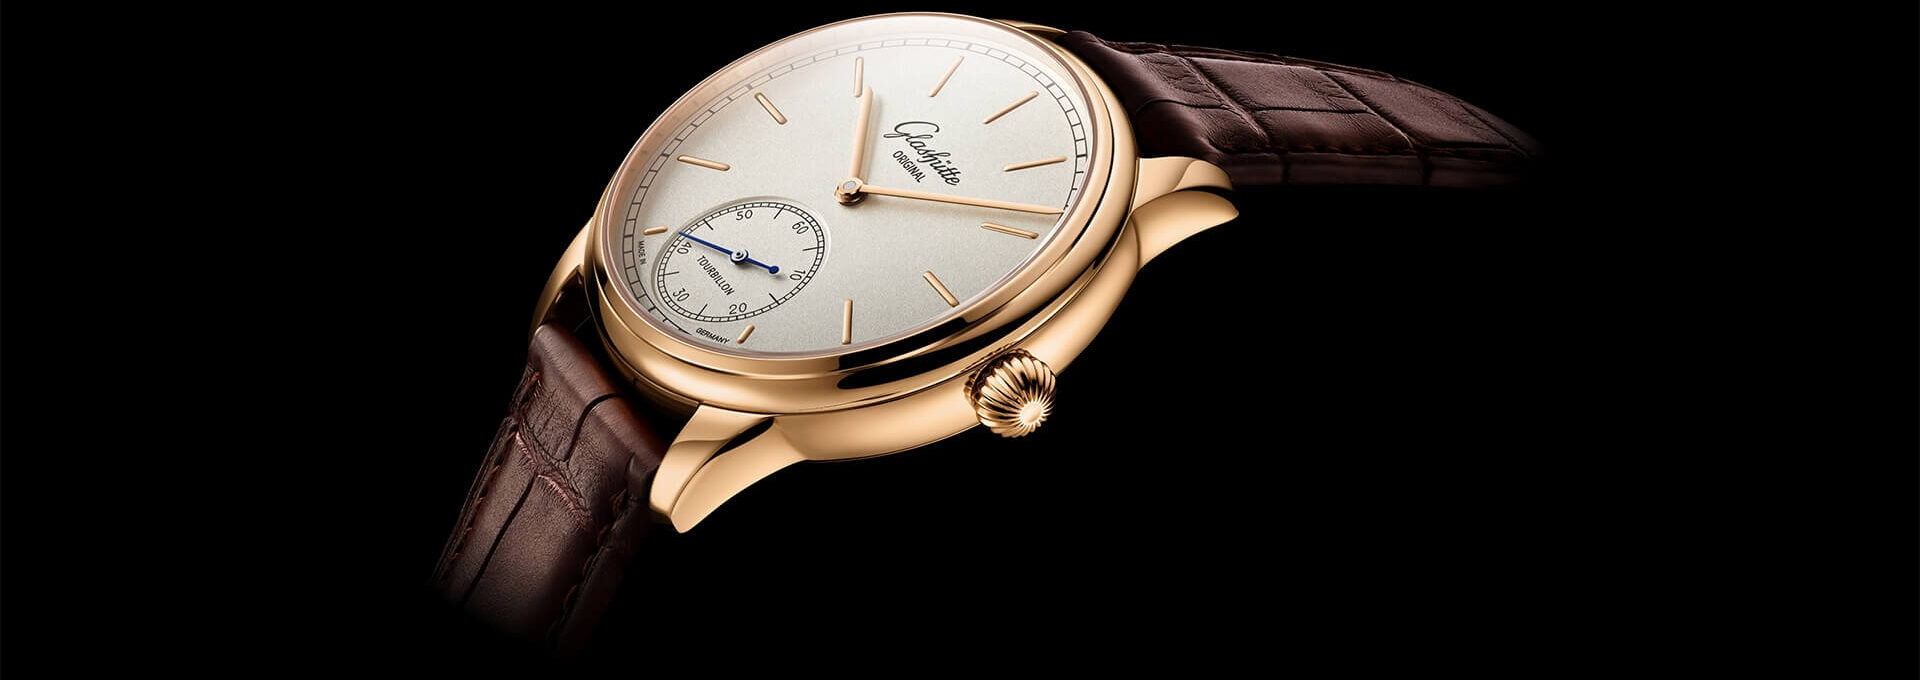 Glashuette_Original-W15401010101-Detail-6